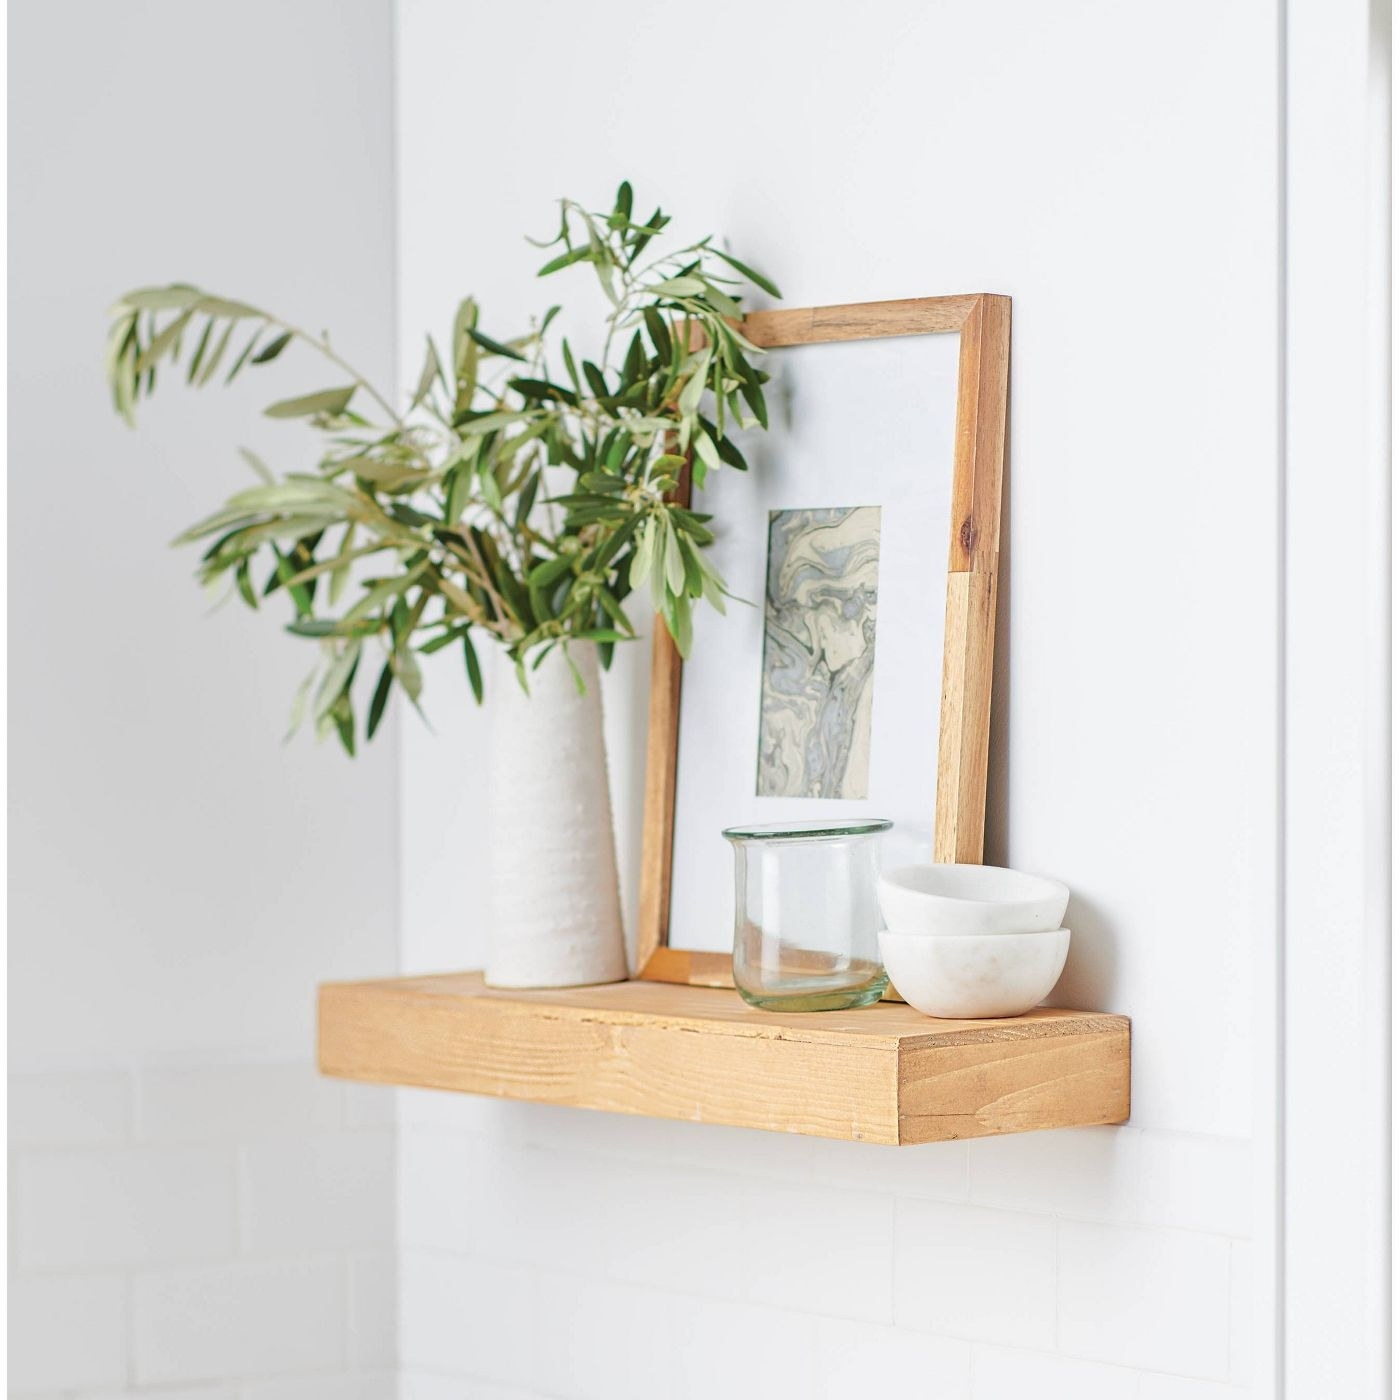 A floating pine wood shelf with photo, plants, and decor on top